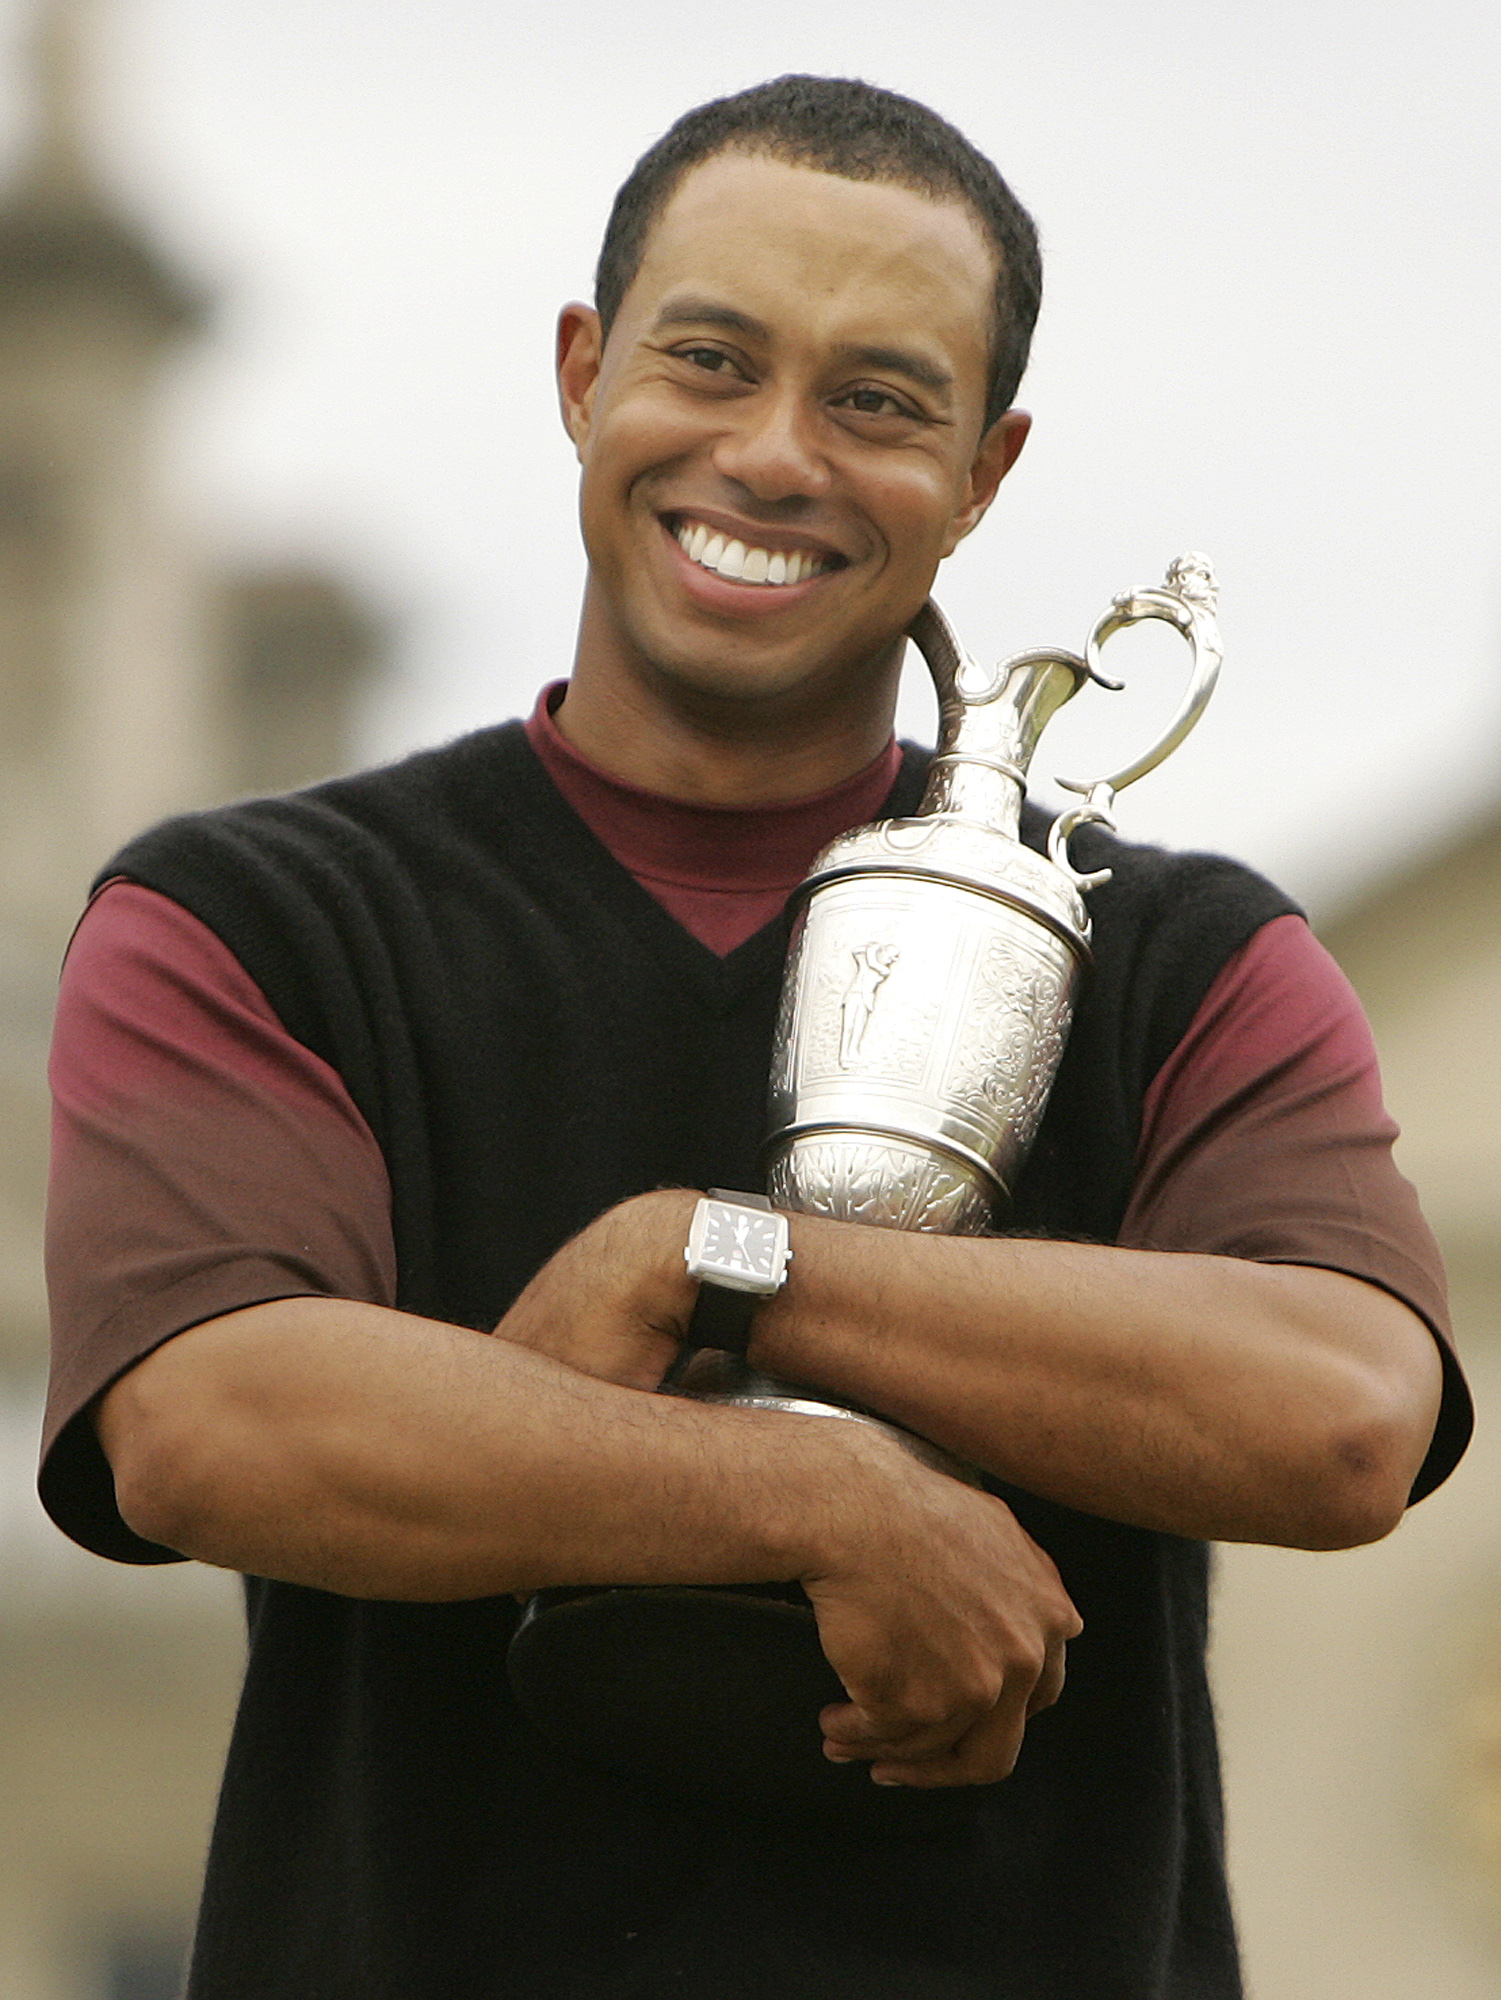 Tiger Woods cradles the Claret Jug after winning the 2000 British Open at St. Andrews.